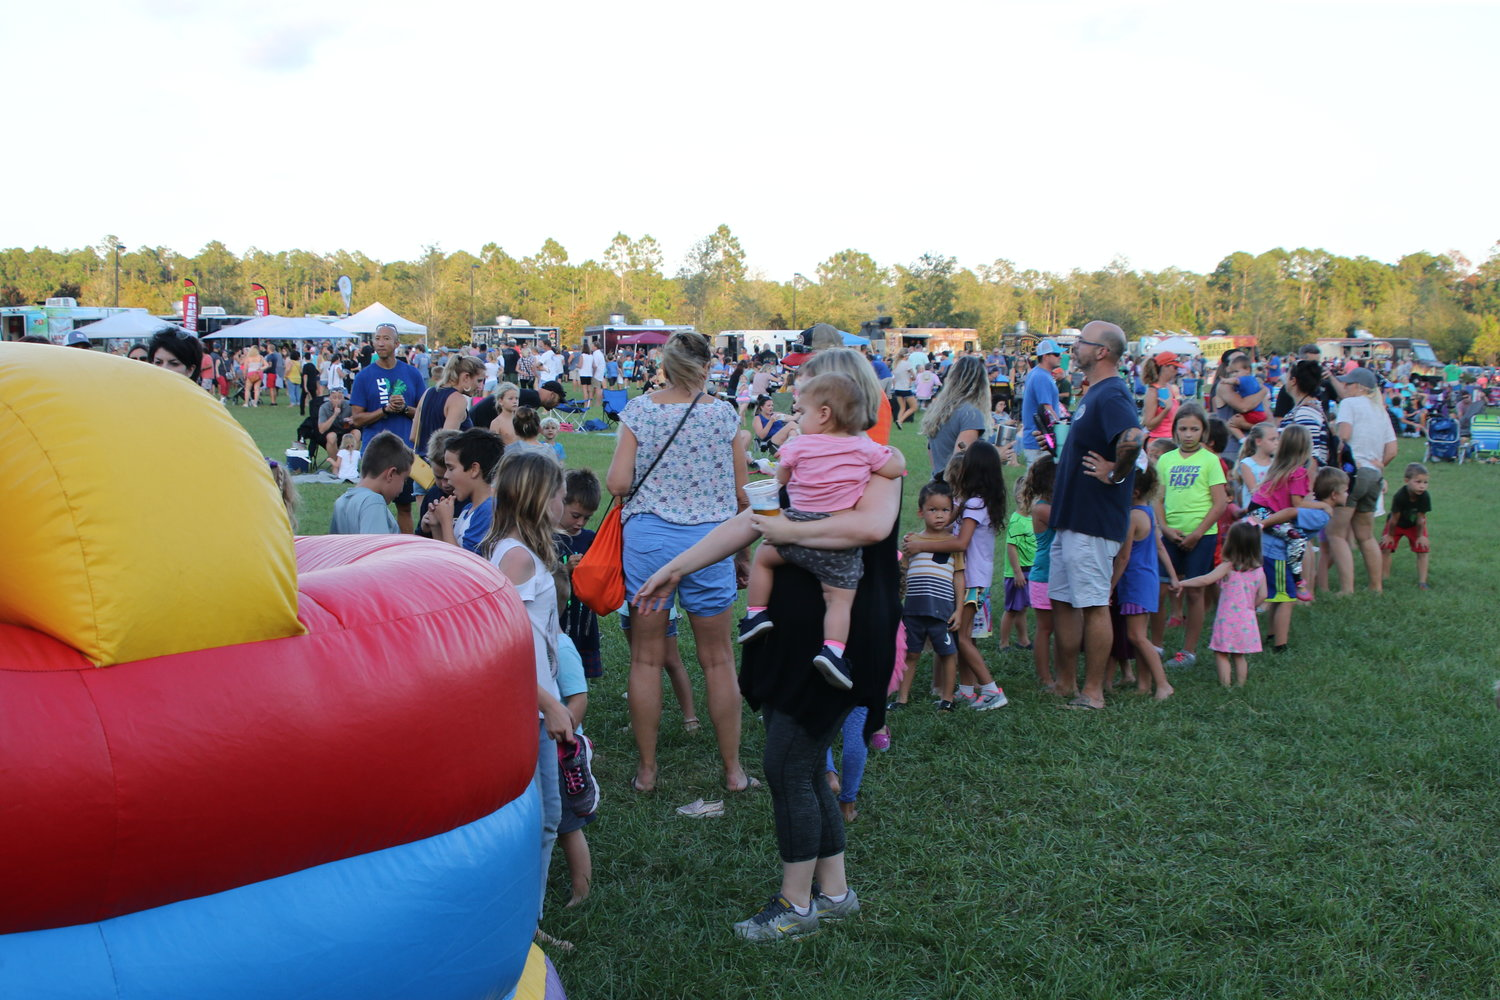 The bounce houses were popular with kids at the Sept. 27 Food Truck Friday.